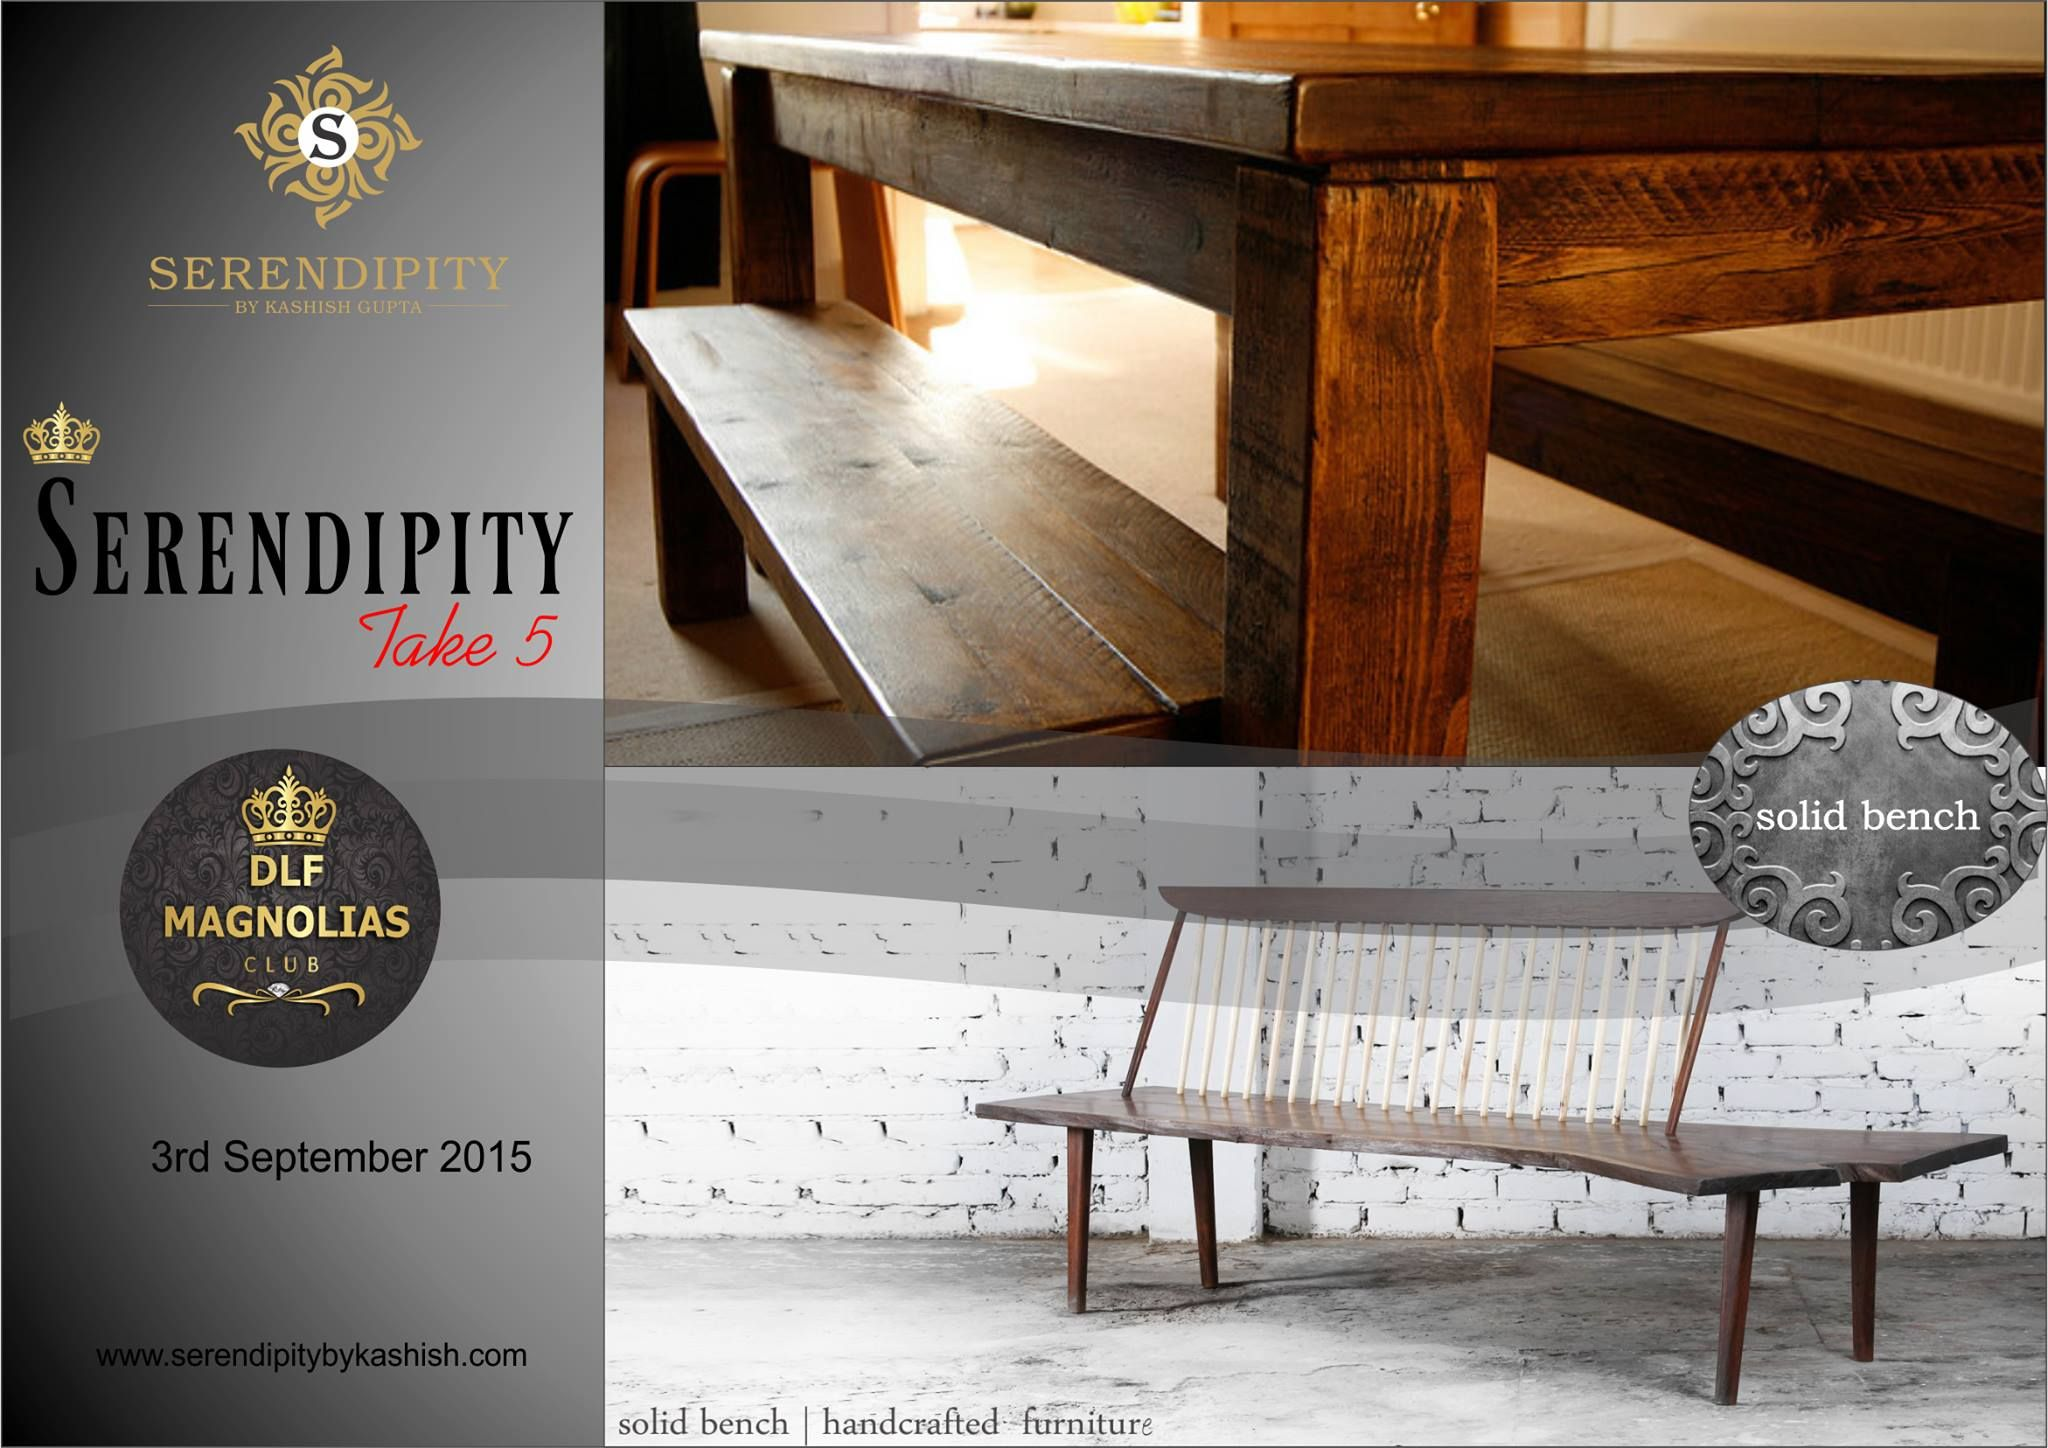 Serendipity Take 5 brings you Solid Bench Hand crafted Furniture to Enhance the Beauty of your Home. on 3rd August 2015 at The DLF Magnolias club between 10 am - 7 pm